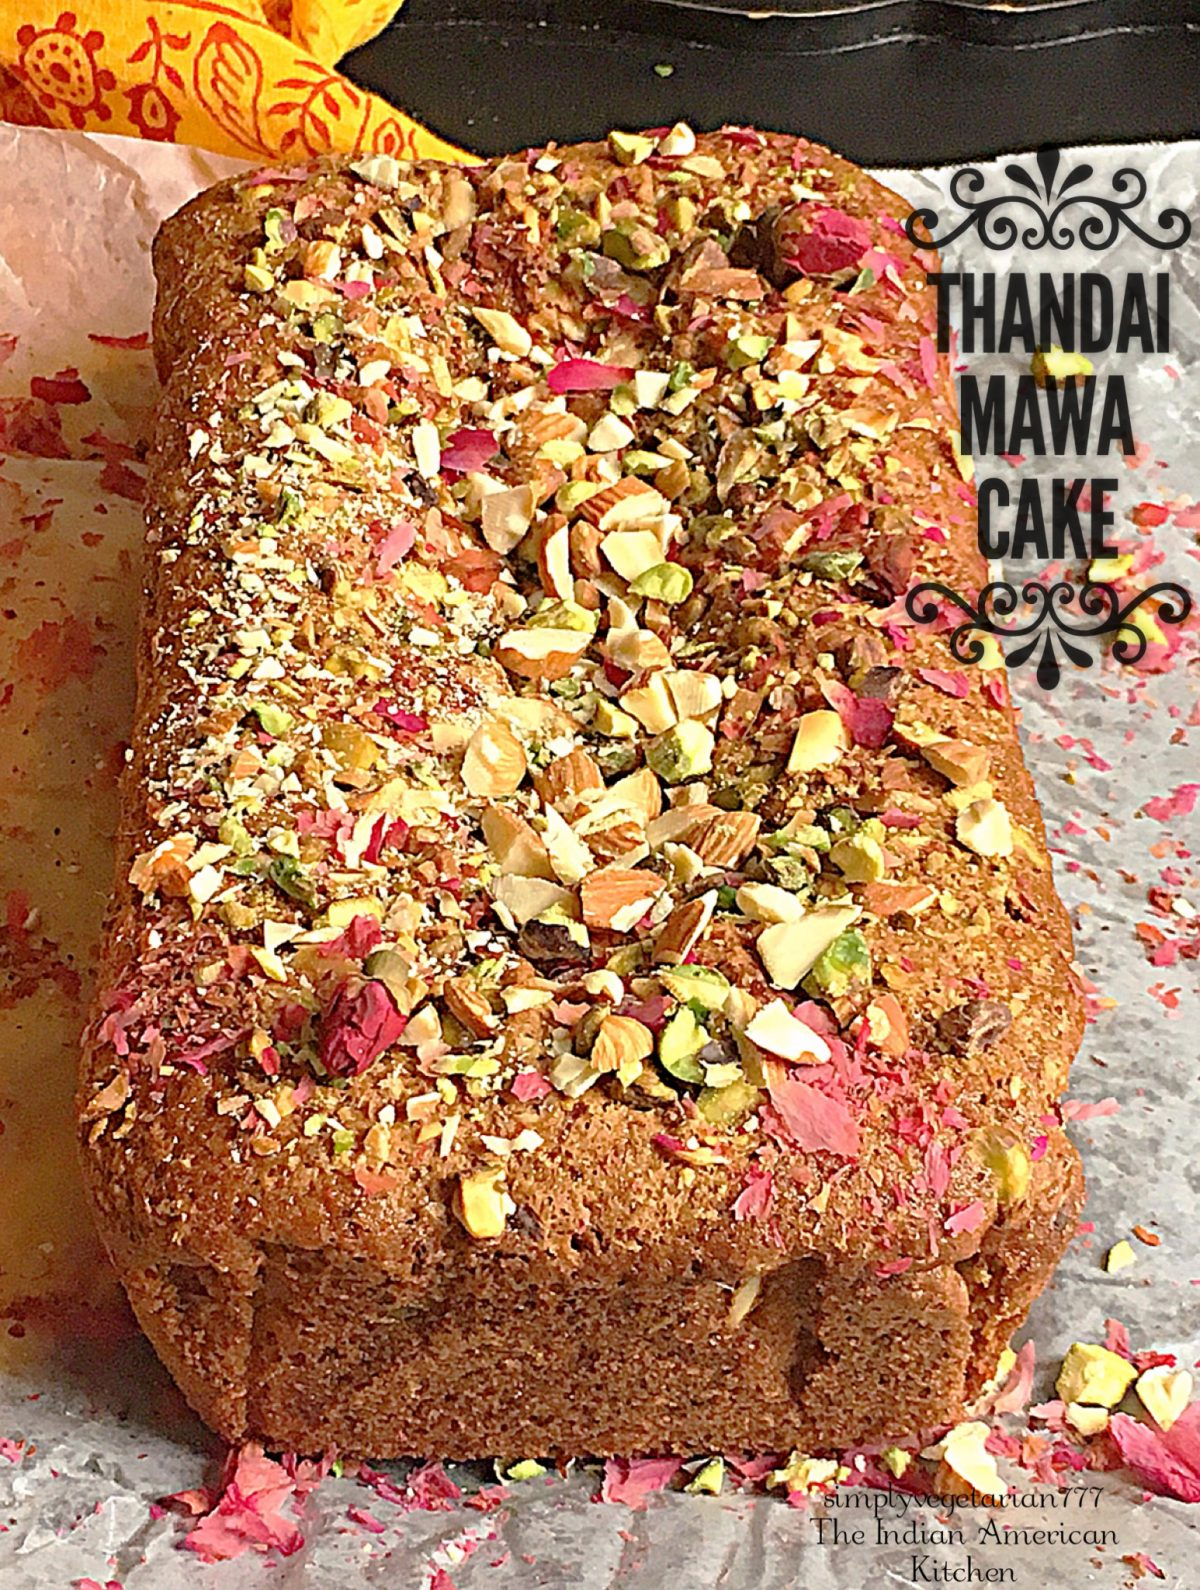 Thandai Mawa Cake is a rich and decadent cake made with Thandai flavors and Mawa (milk solids). It tastes like Indian Mithai and has super moist texture. This cake is perfect to celebrate any Indian Festival. #egglesscake #eggfreecake #thandairecipe #mawacake #fusioncakes #indiancake #mithaicake